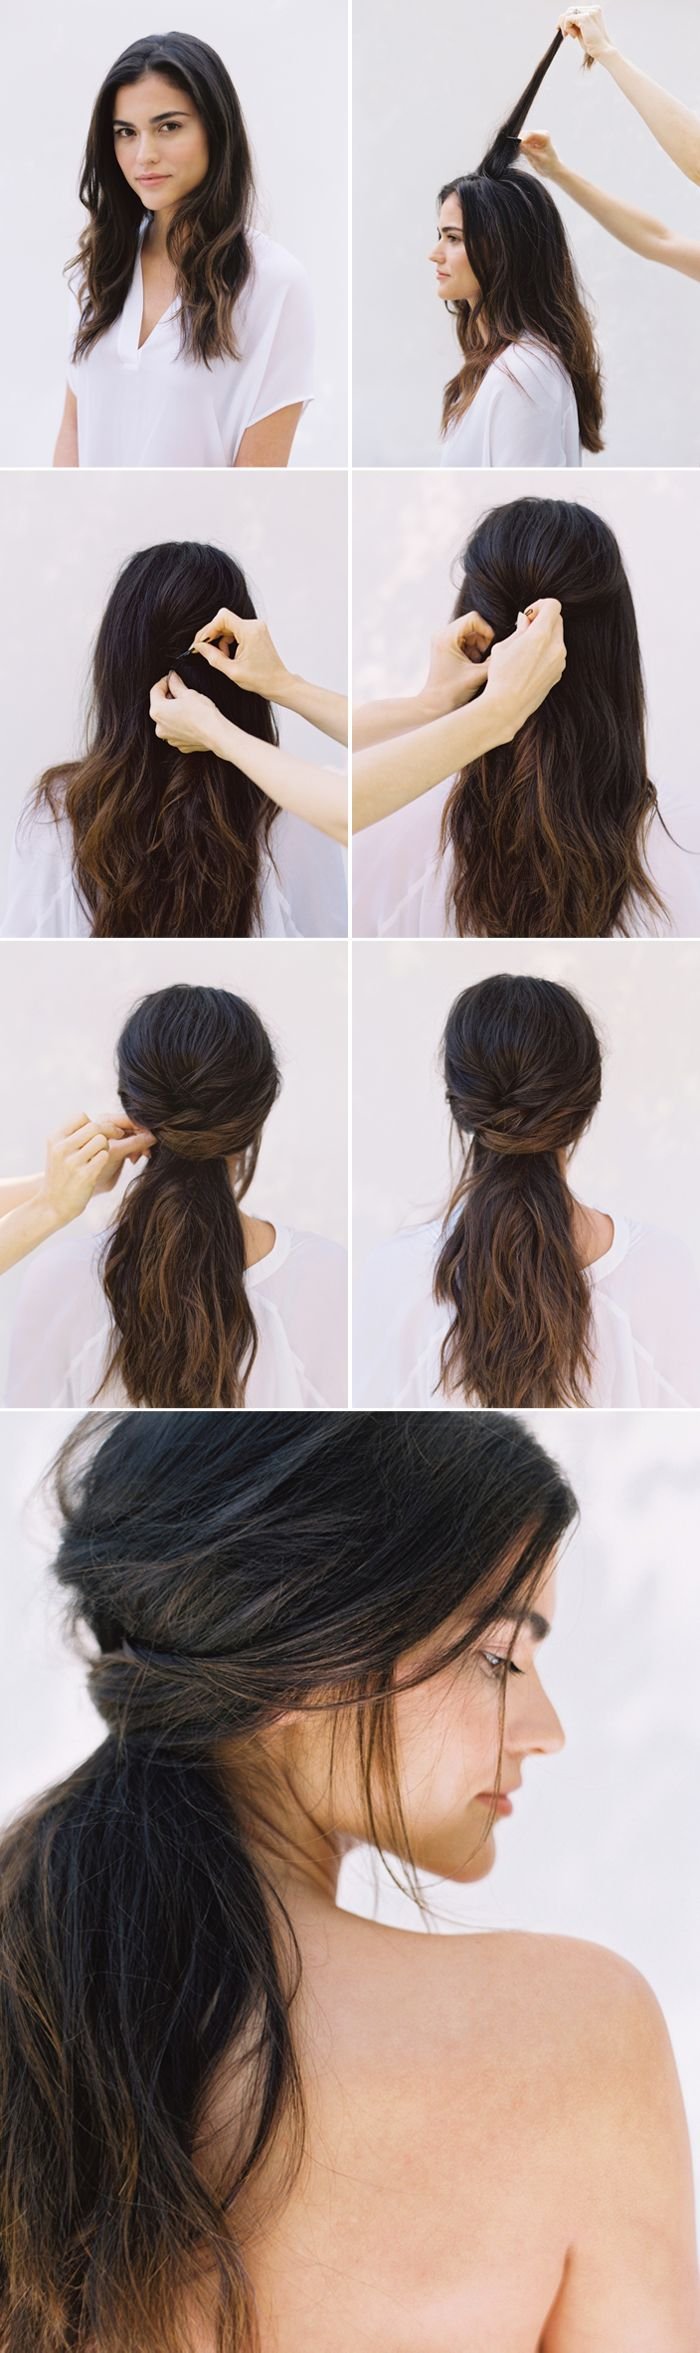 best 25+ different hairstyles ideas on pinterest | braids long